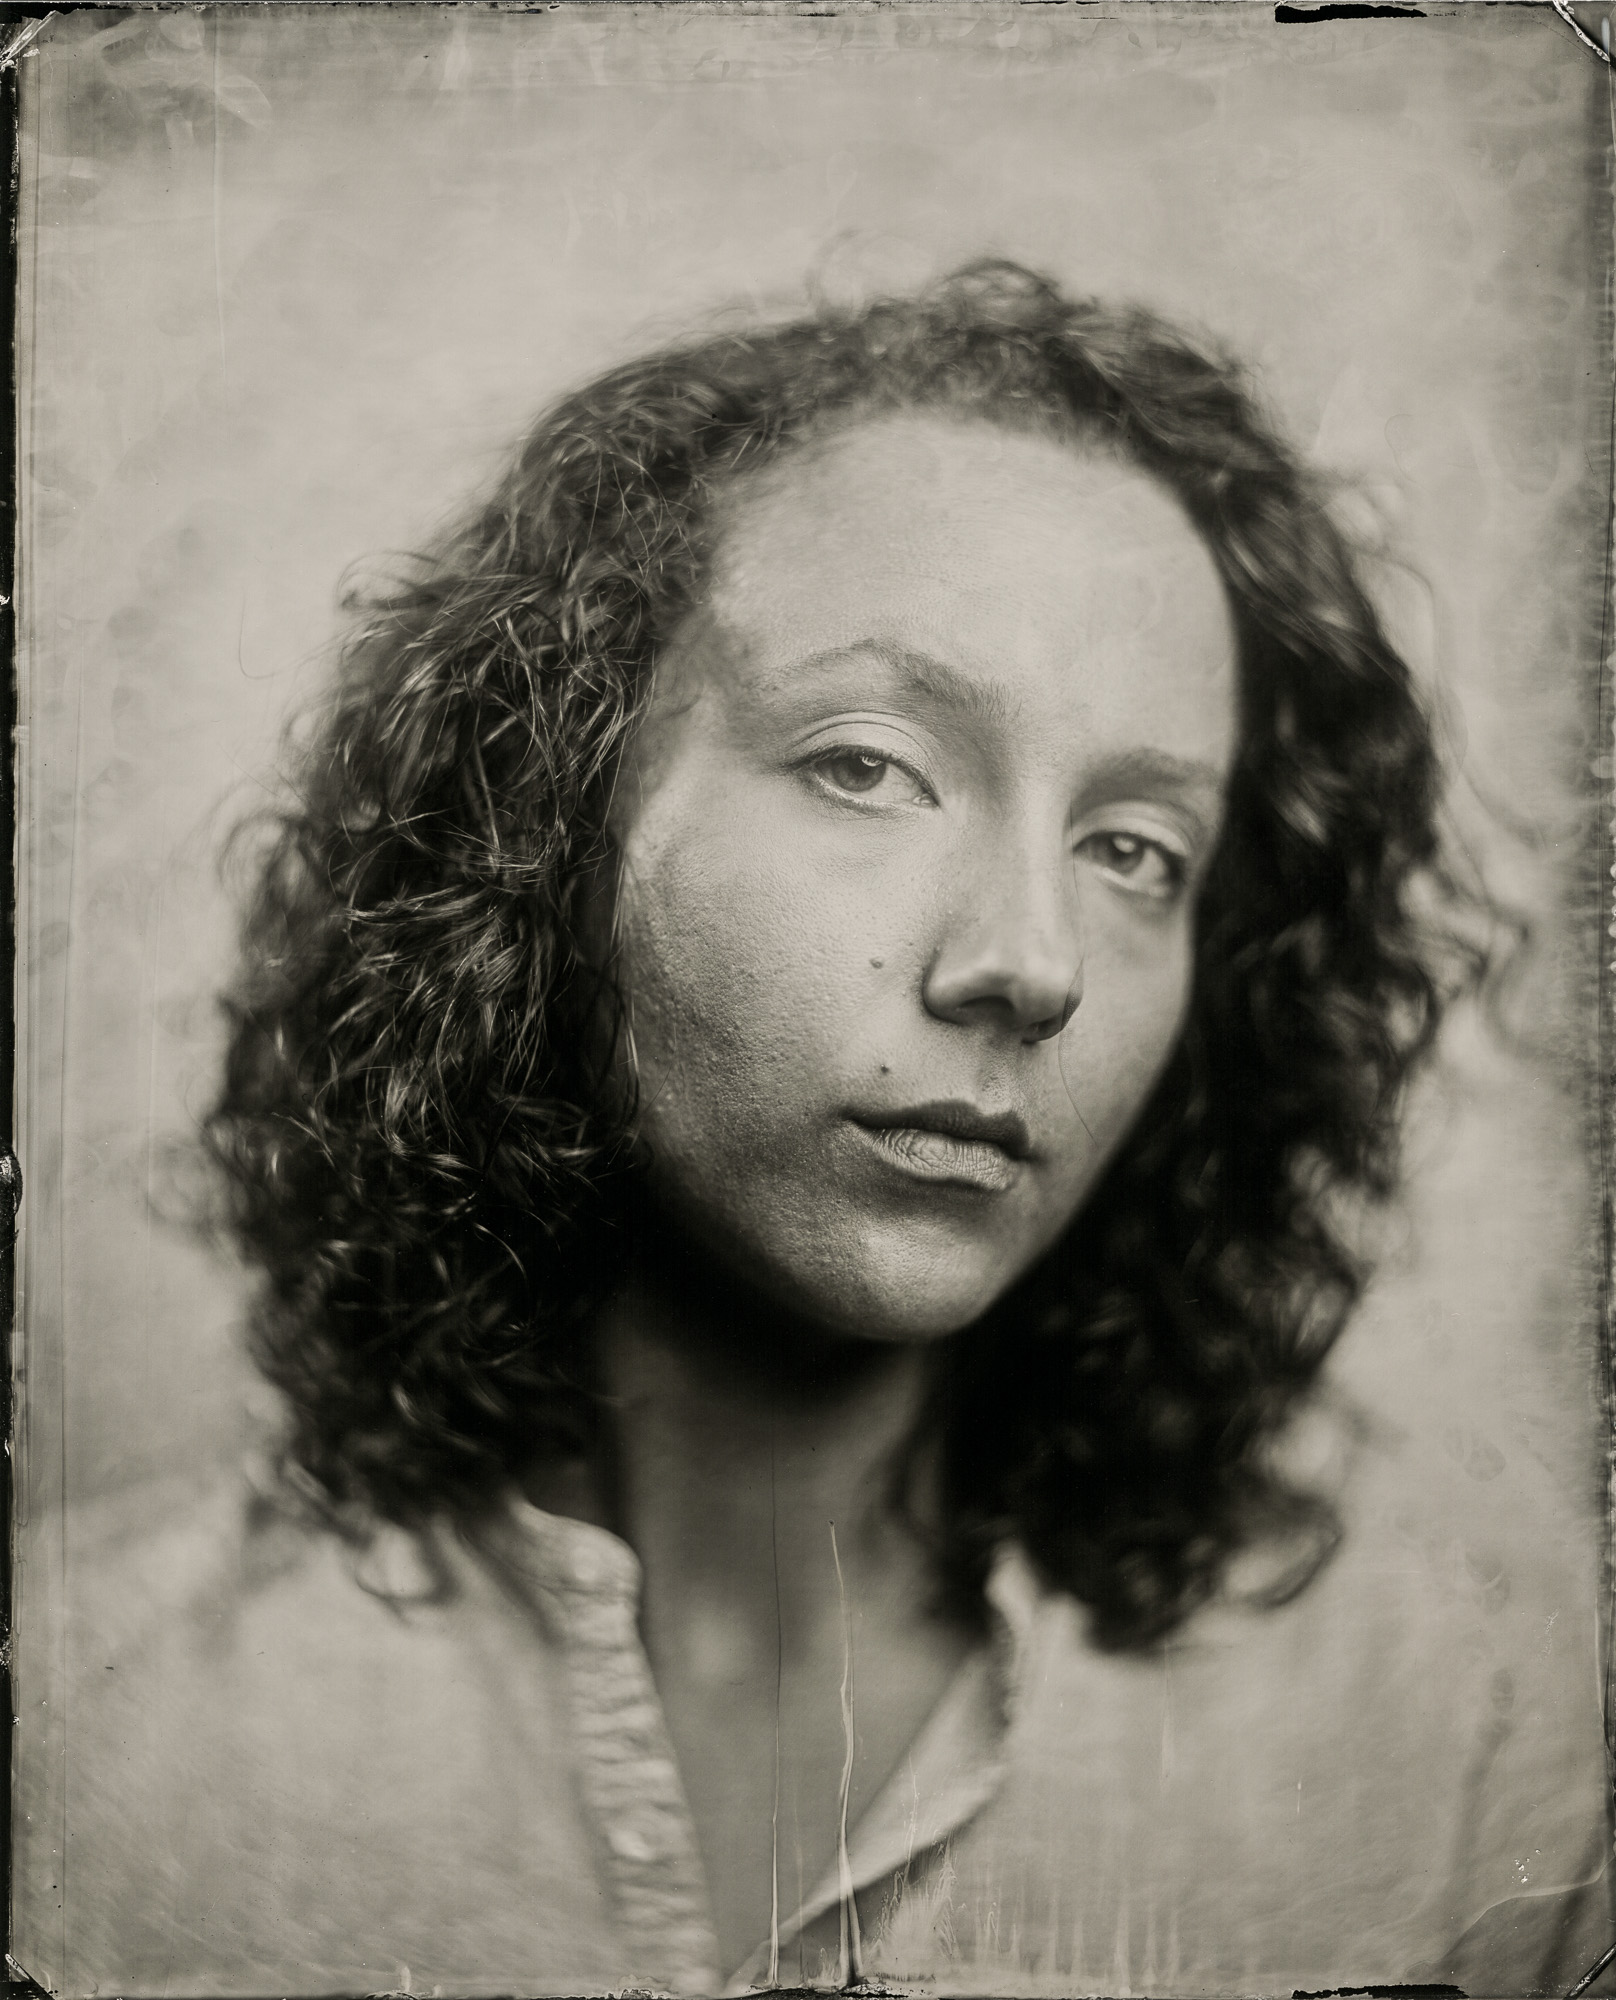 Allison_8x10Tintype 2-Edit-web.jpg